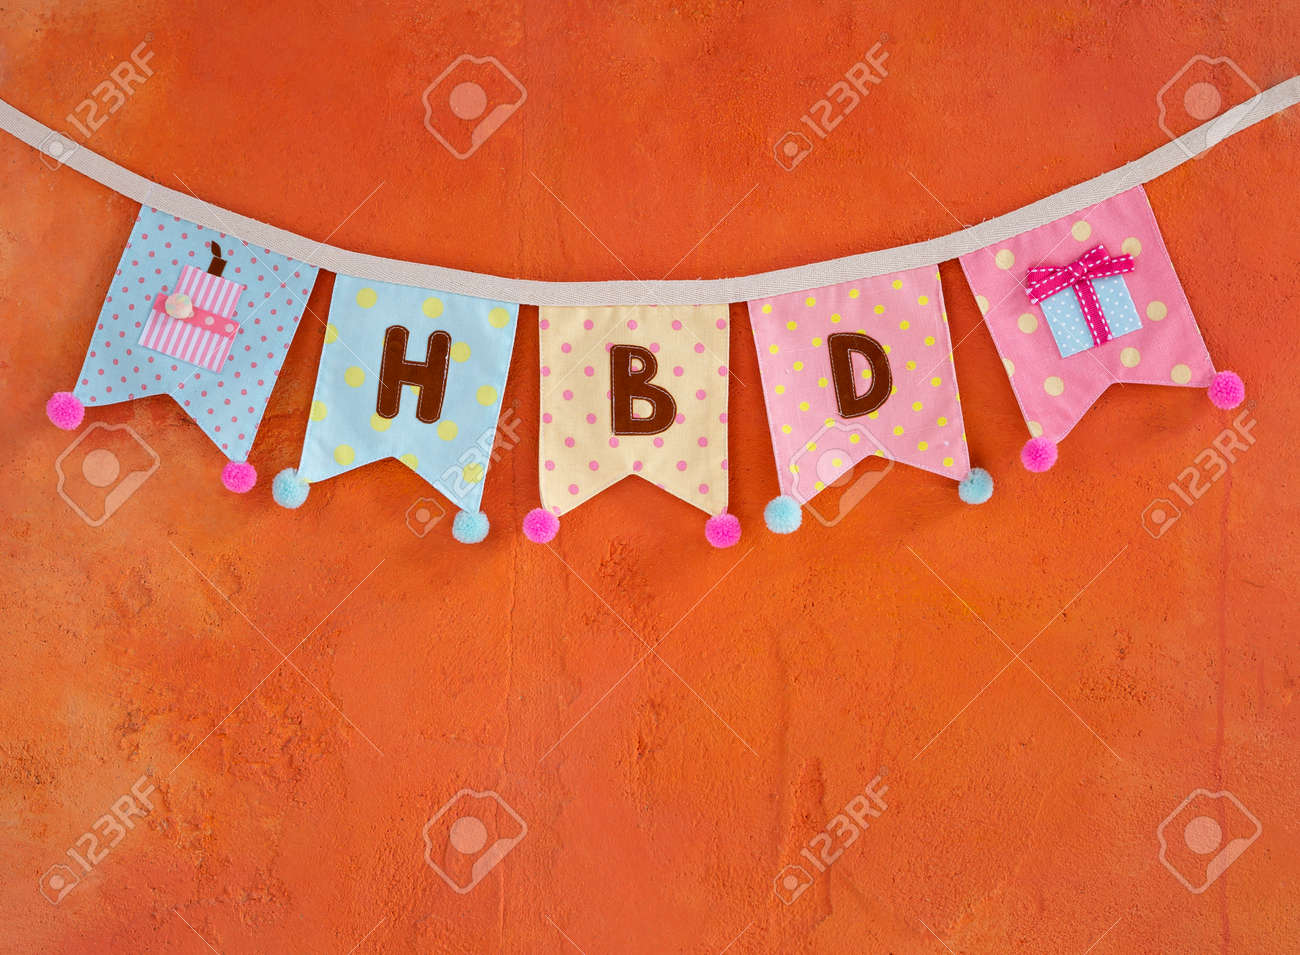 Design Birthday Party Flag Hanging On Orange Cement Wall Texture